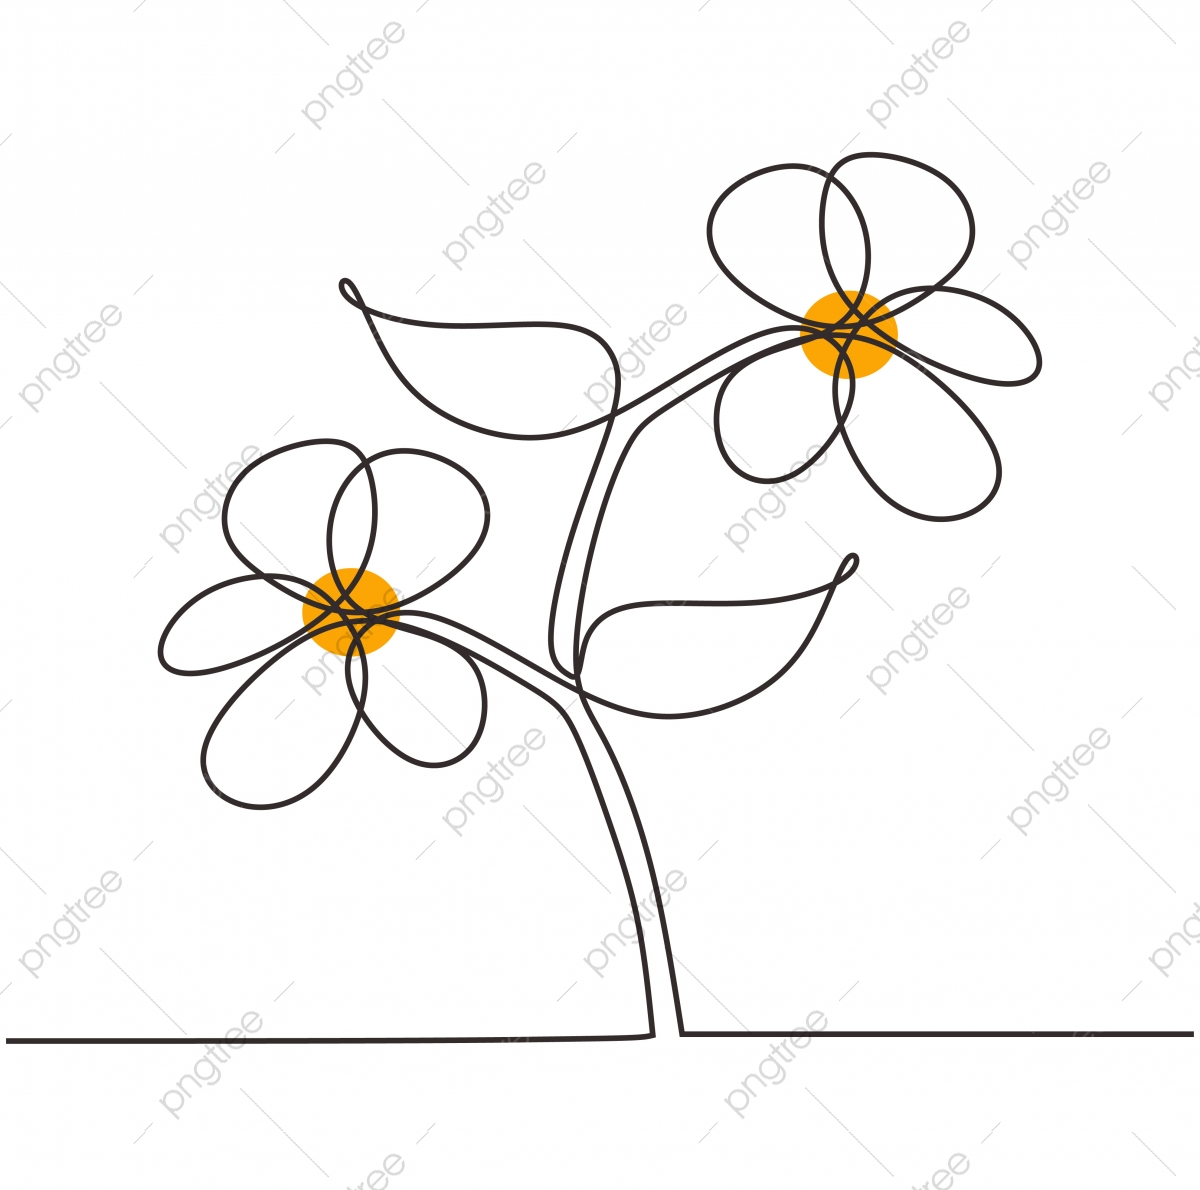 Plumeria Flower Png Images Vector And Psd Files Free Download On Pngtree